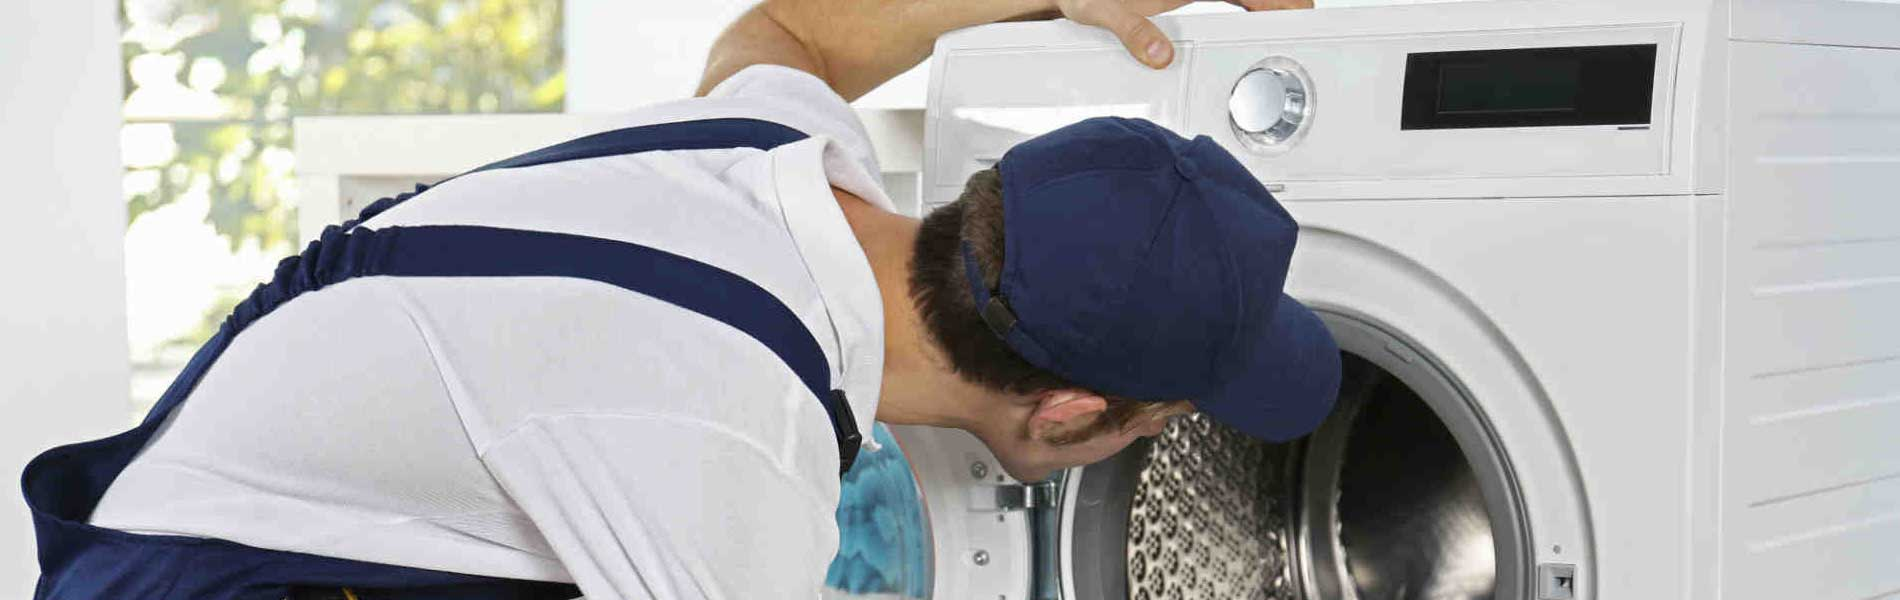 Onida Washing Machine Mechanic in Vallalar Nagar